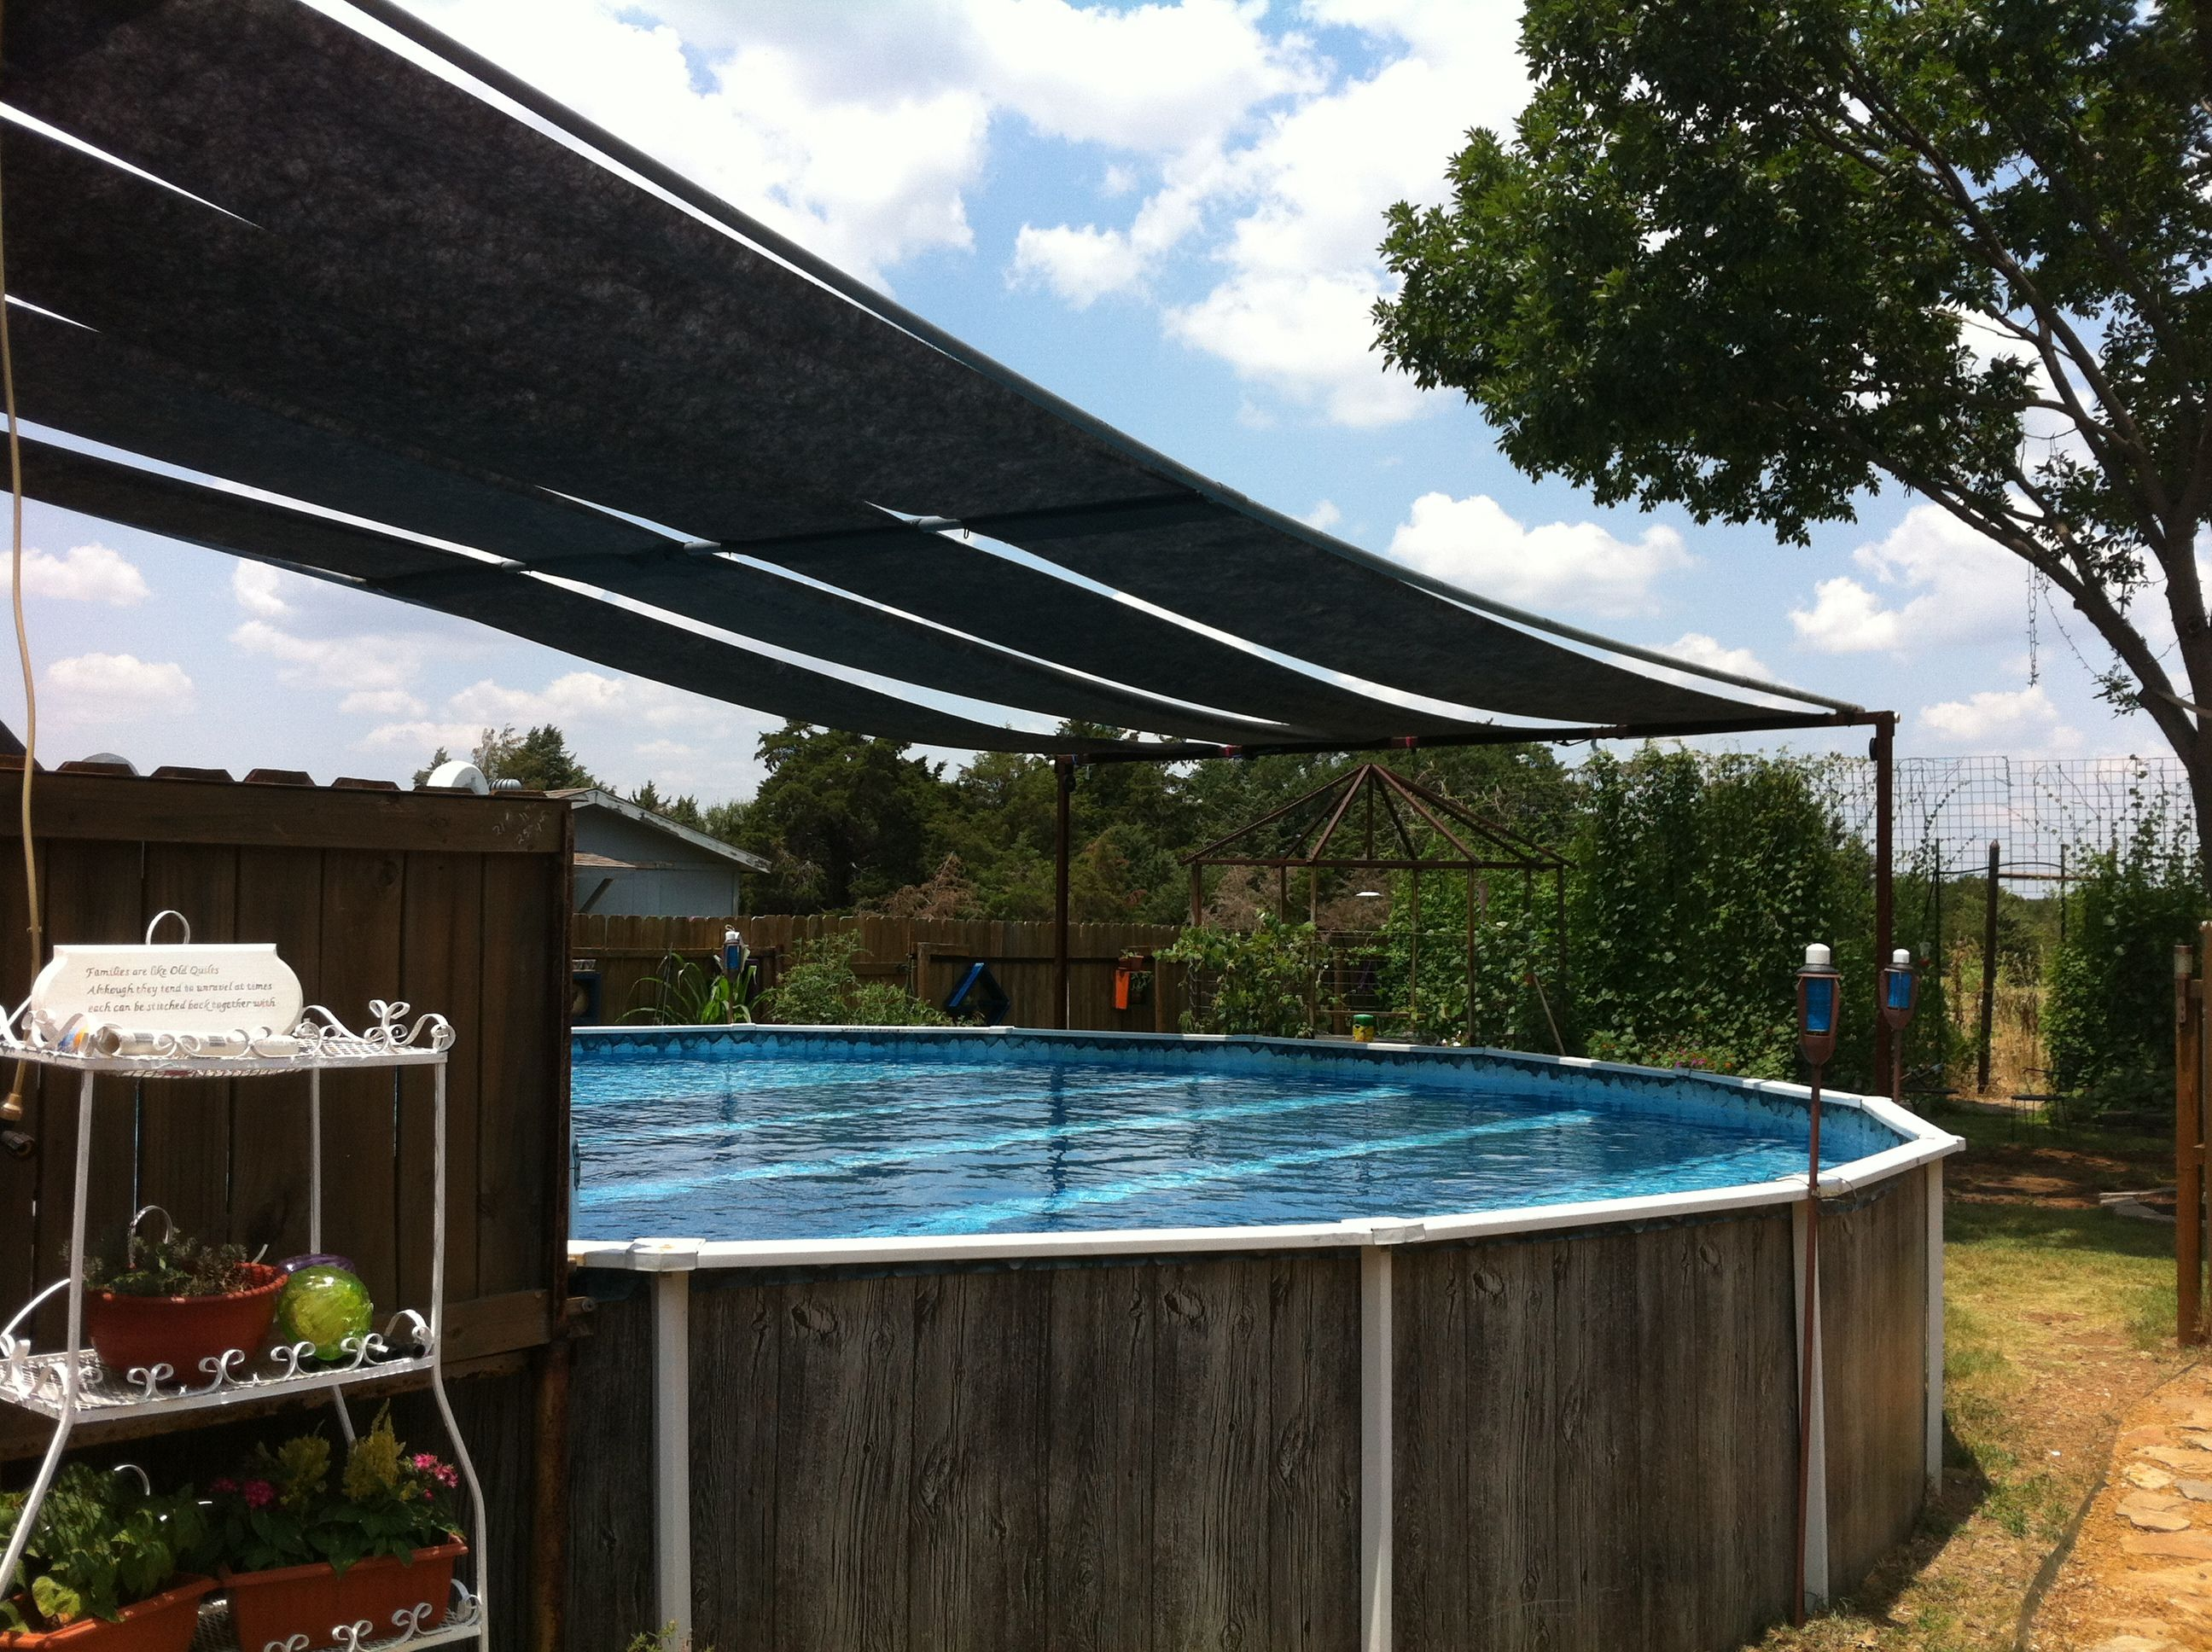 Above Ground Pool Shade Pool Shade Backyard Pool Above Ground Pool